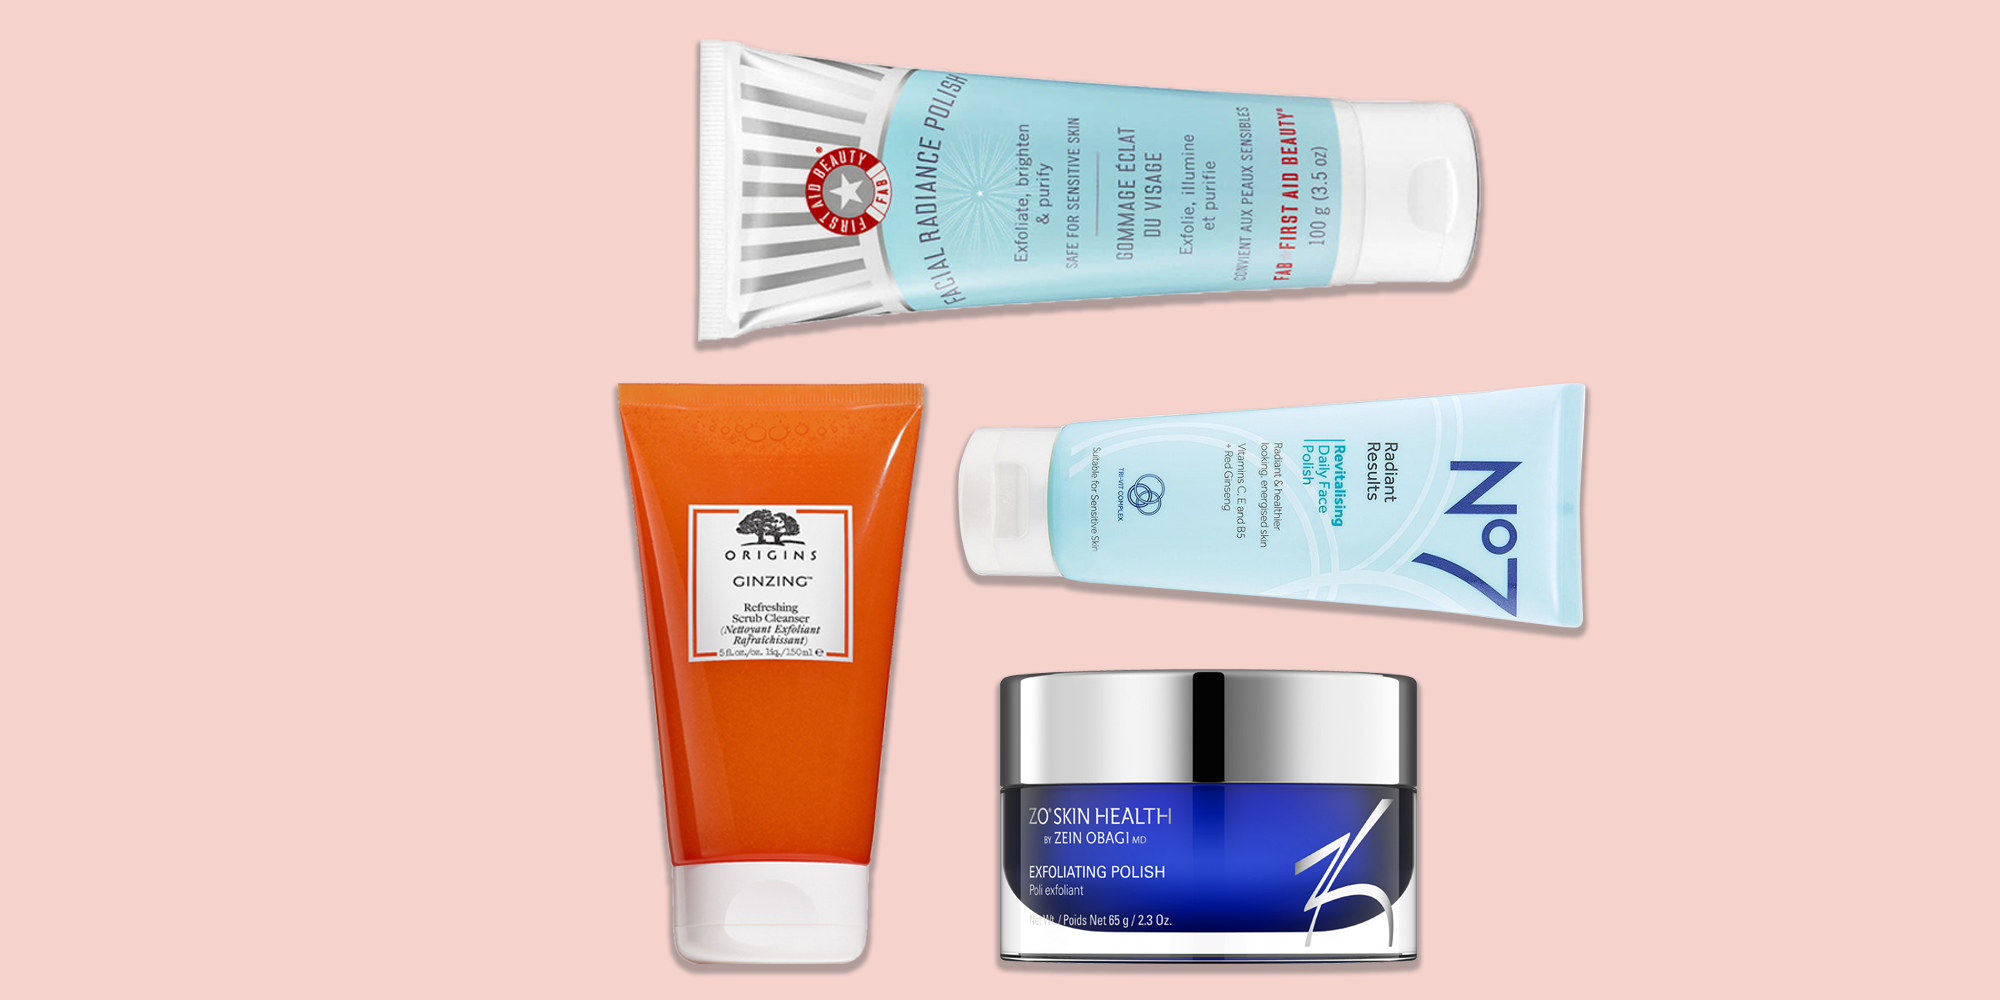 14 Best Face Scrubs 2020 - Best Face Exfoliators for Glowing Skin